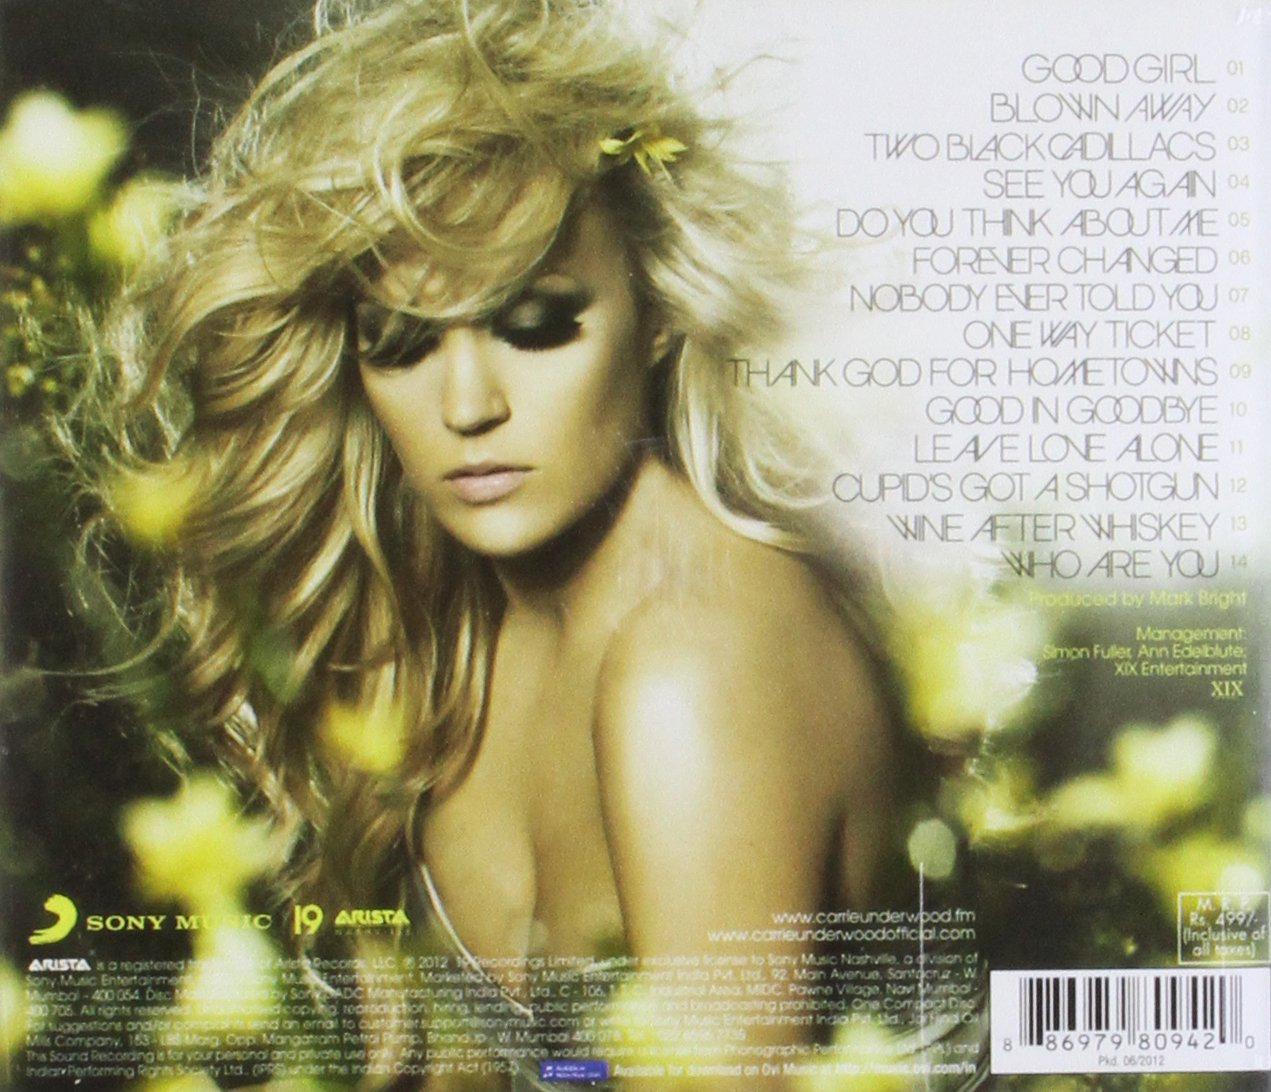 Blown Away by Carrie Underwood: Amazon.co.uk: Music